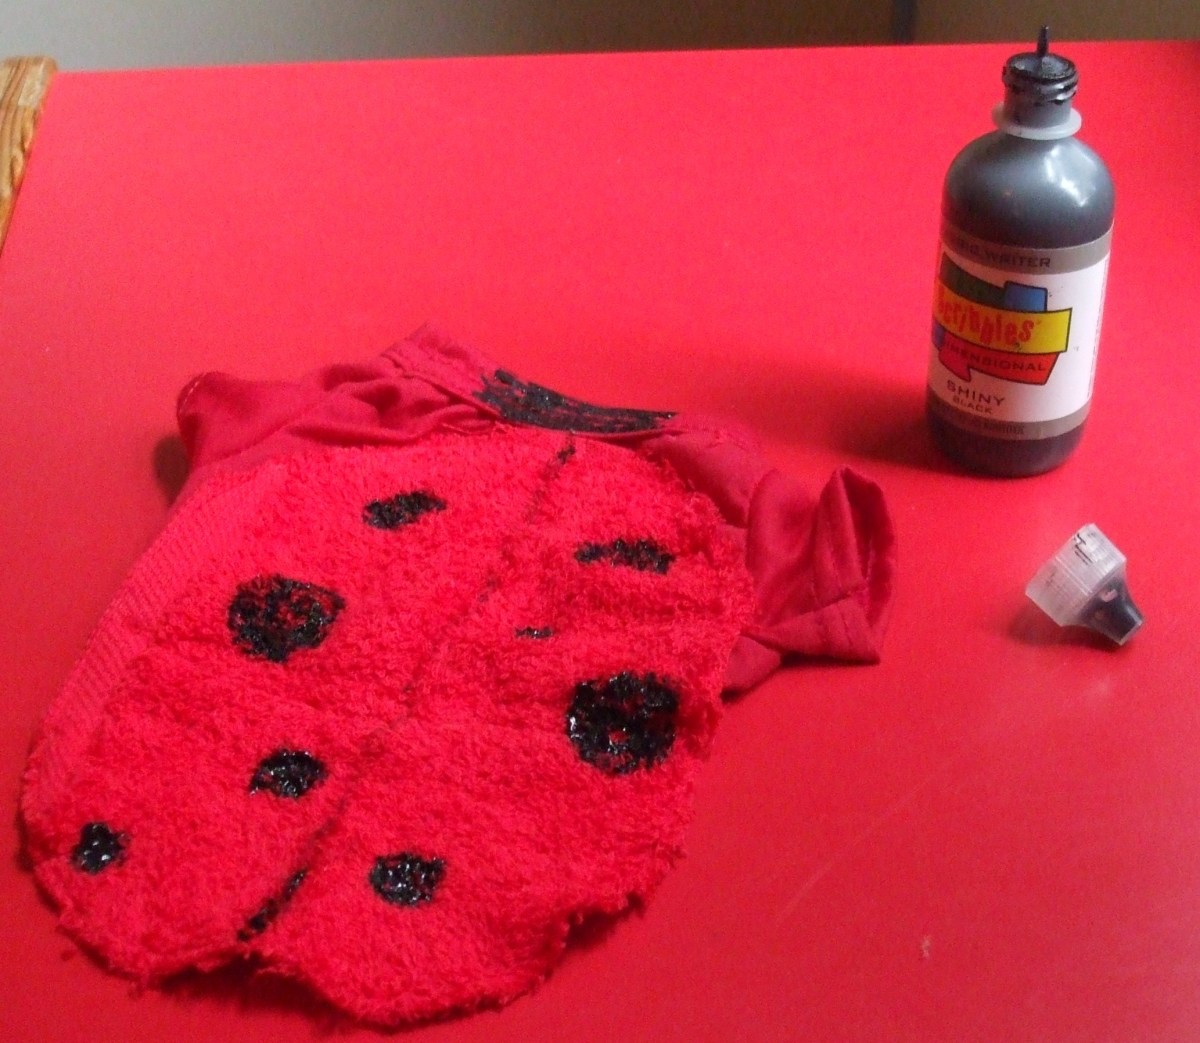 Use a permanent black marker or fabric paint to make ladybug spots on the kitten costume.